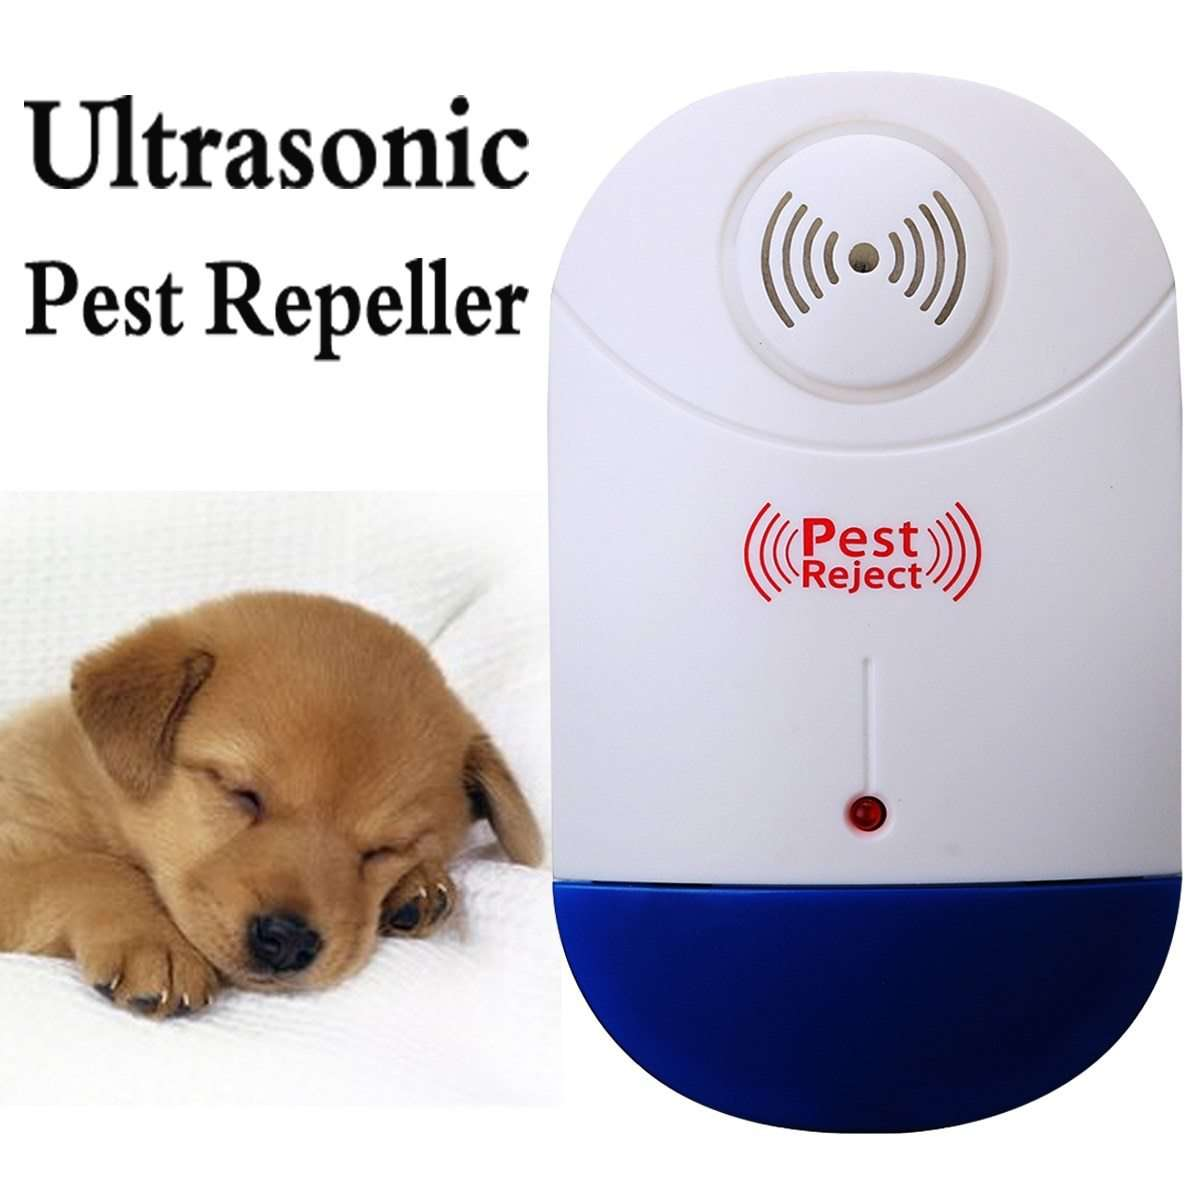 Ultrasonic Pest Repeller Electronic Mosquito Control Plug In Rodent Mice Insect Non-toxic Home Garden Pest Control Tools Device, , www.suppashoppa.co.uk